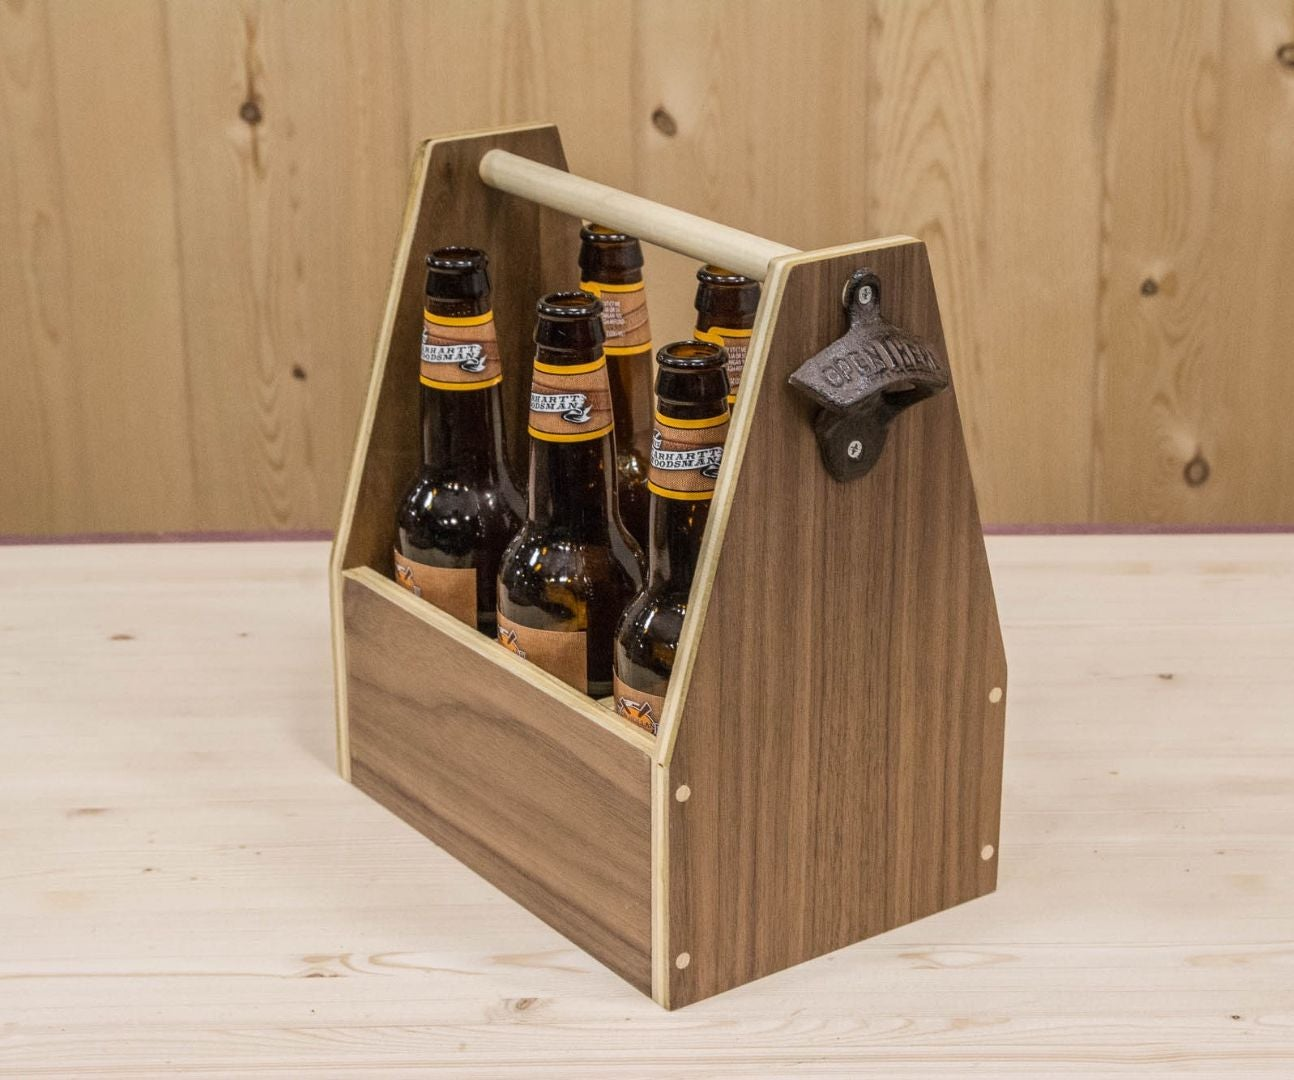 How To Make A Beer Tote 9 Steps With Pictures Instructables